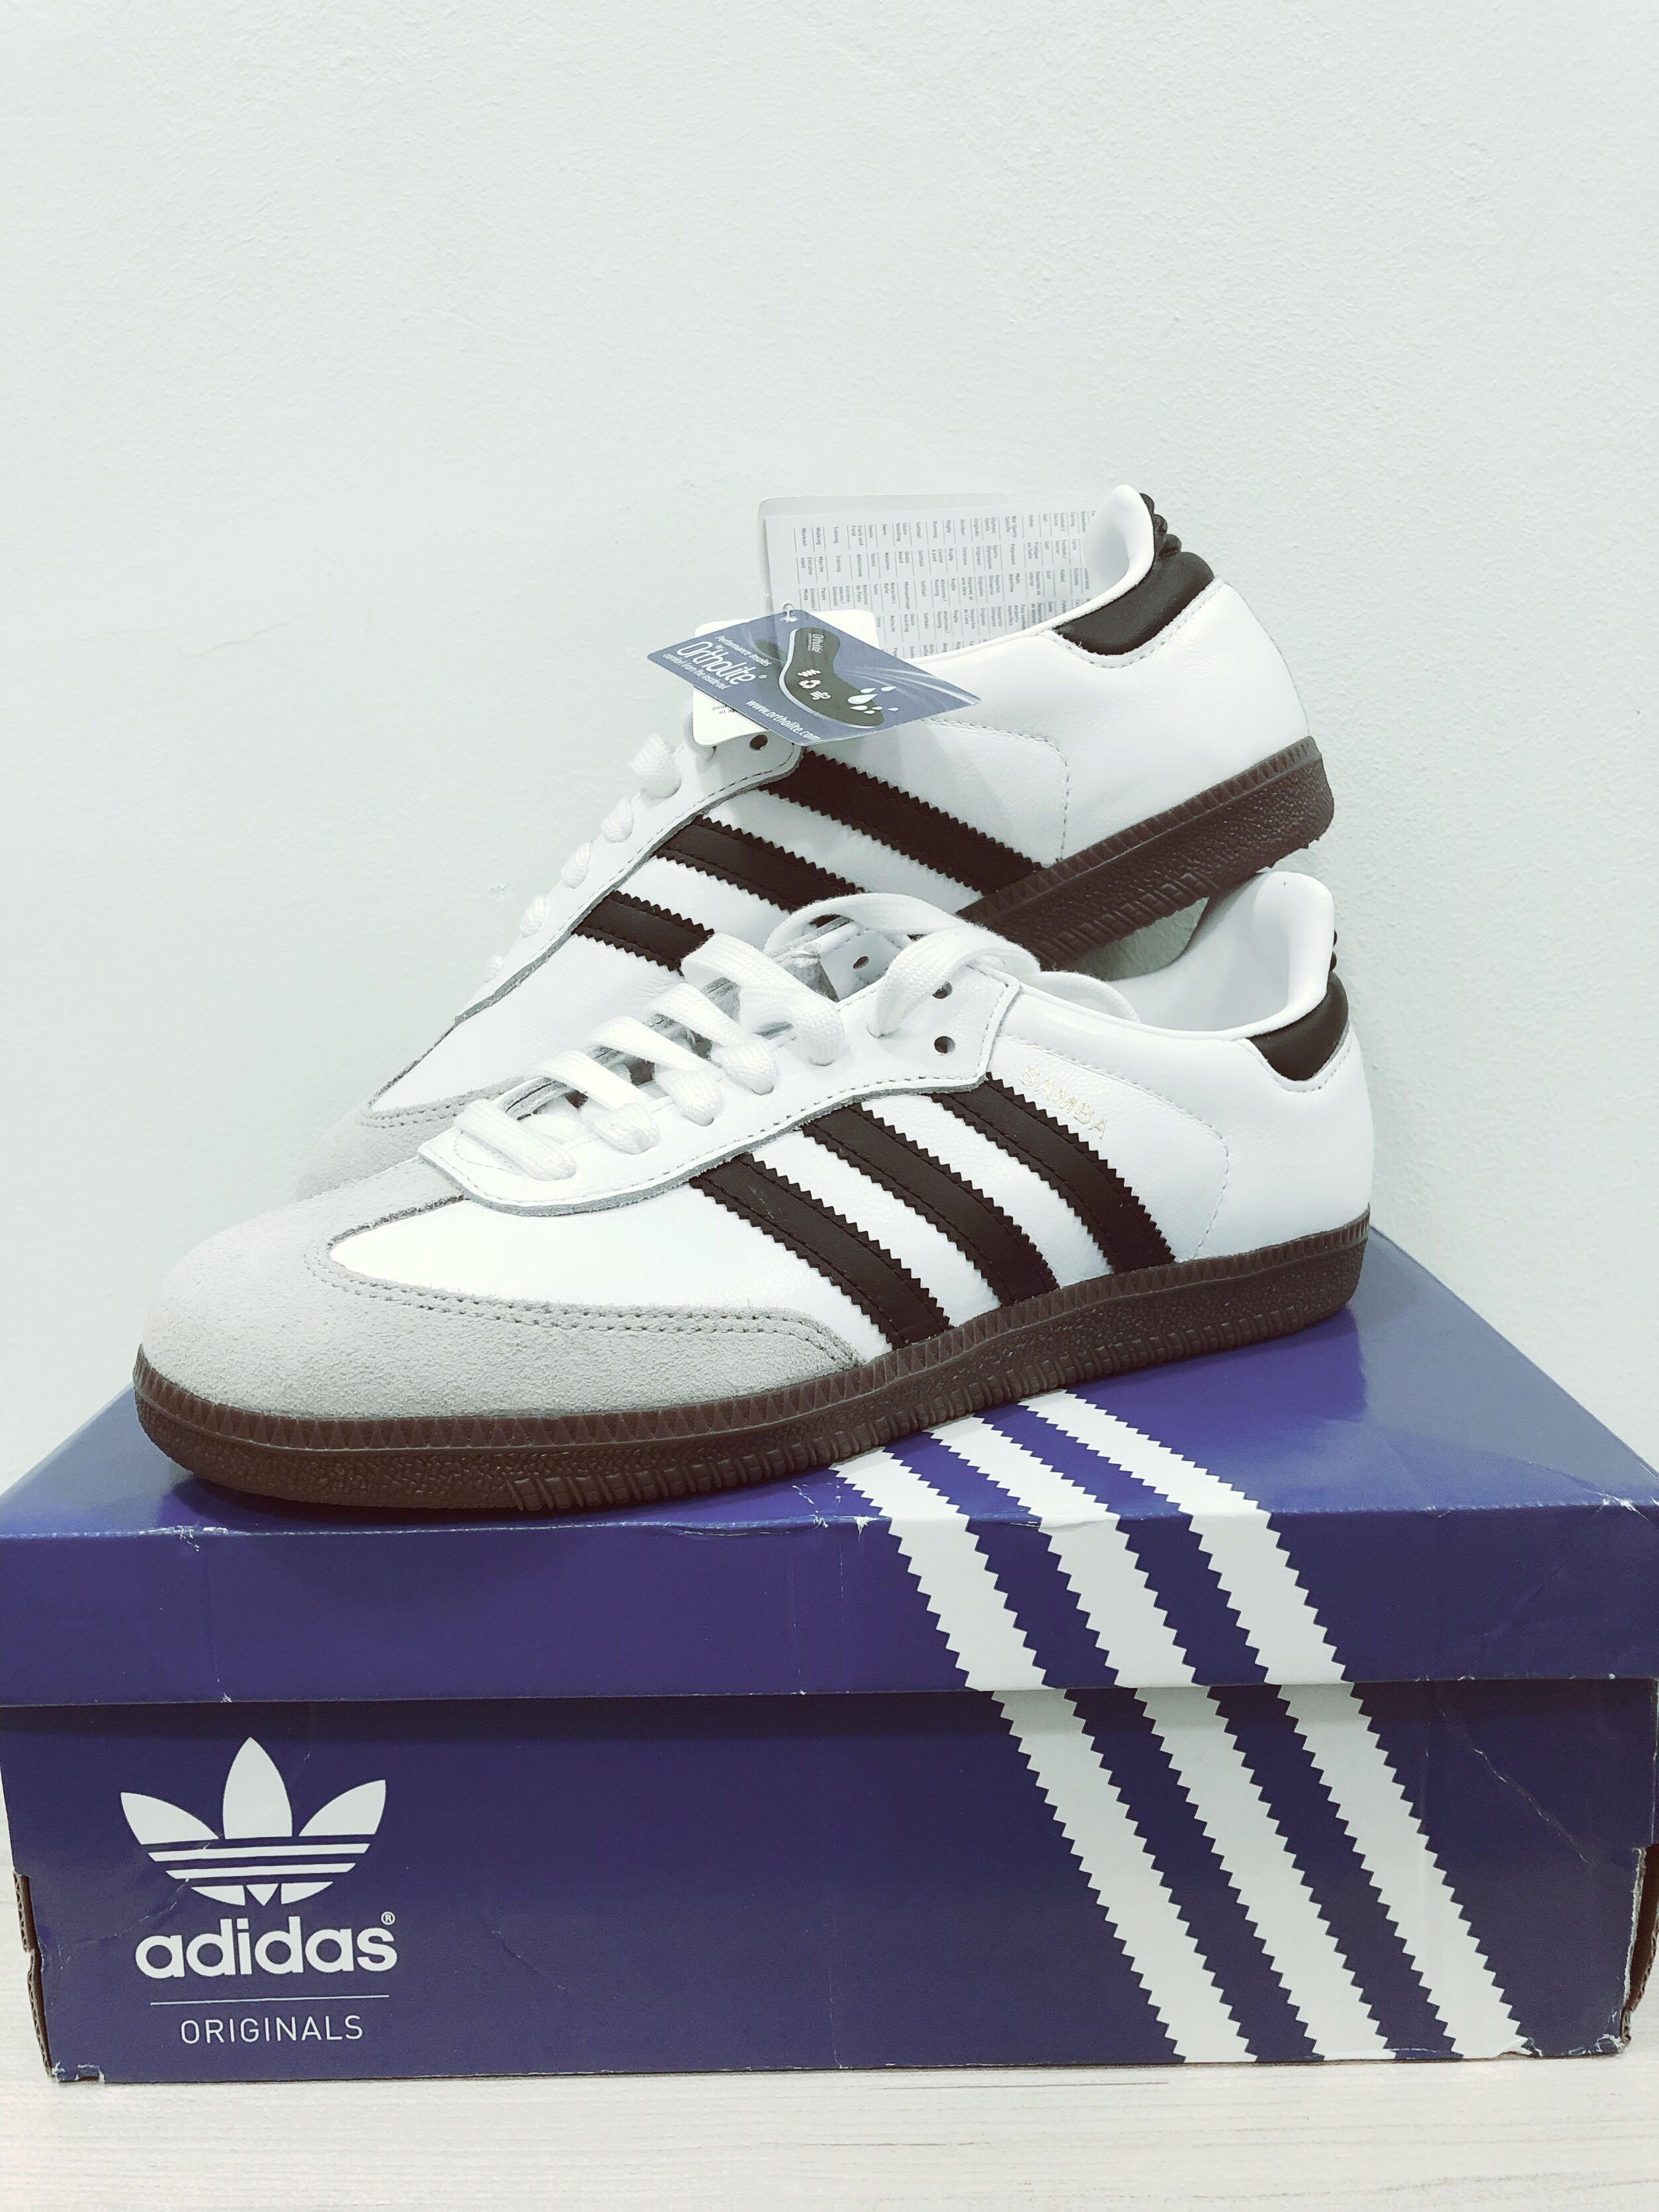 5e406676ed Adidas Originals Samba OG Shoes